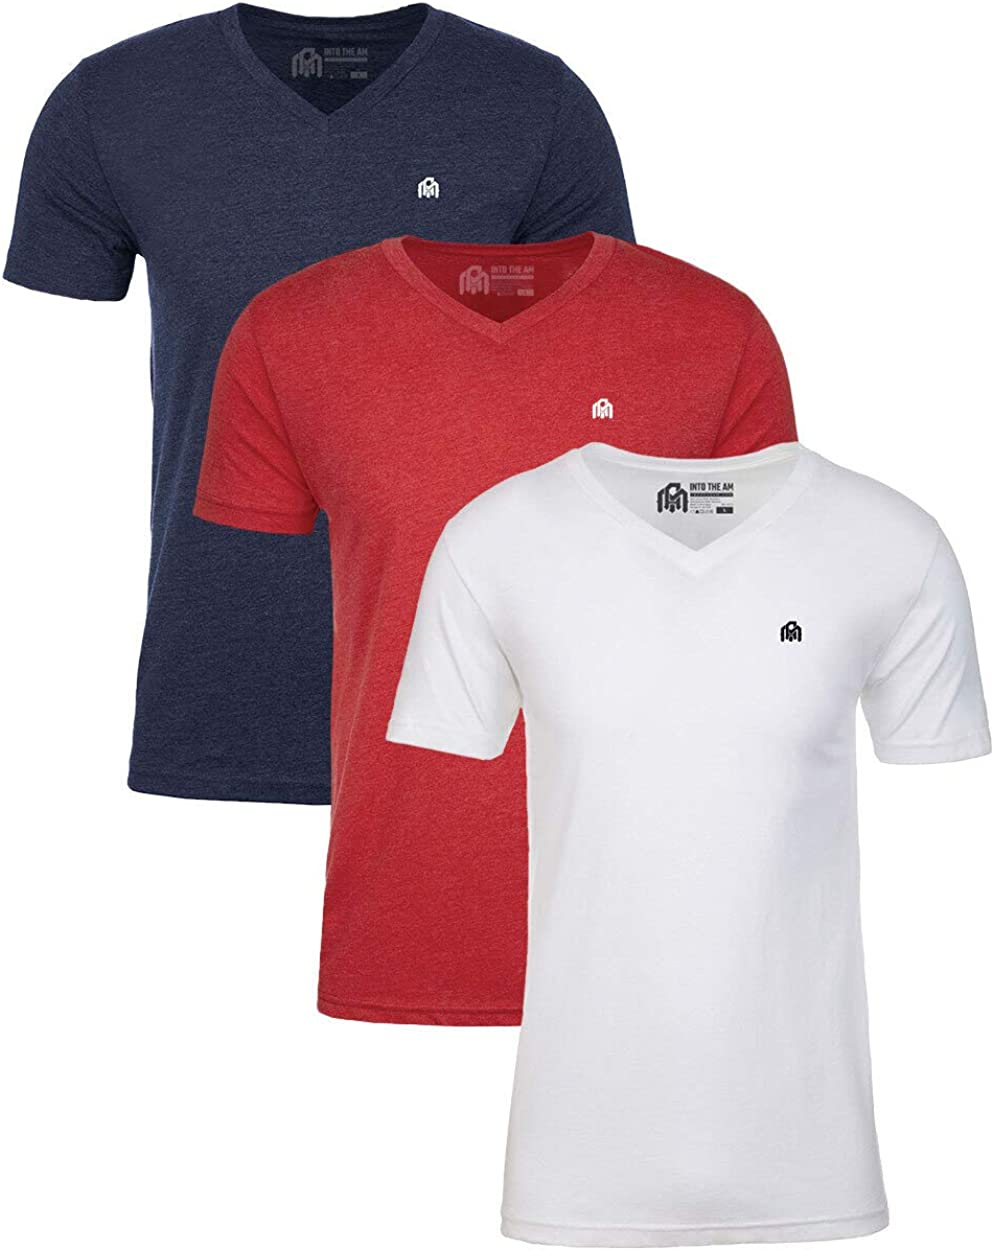 Soft Fitted Short Sleeve V Neck Tee Bundle INTO THE AM Mens V-Neck T-Shirts Multi-Pack